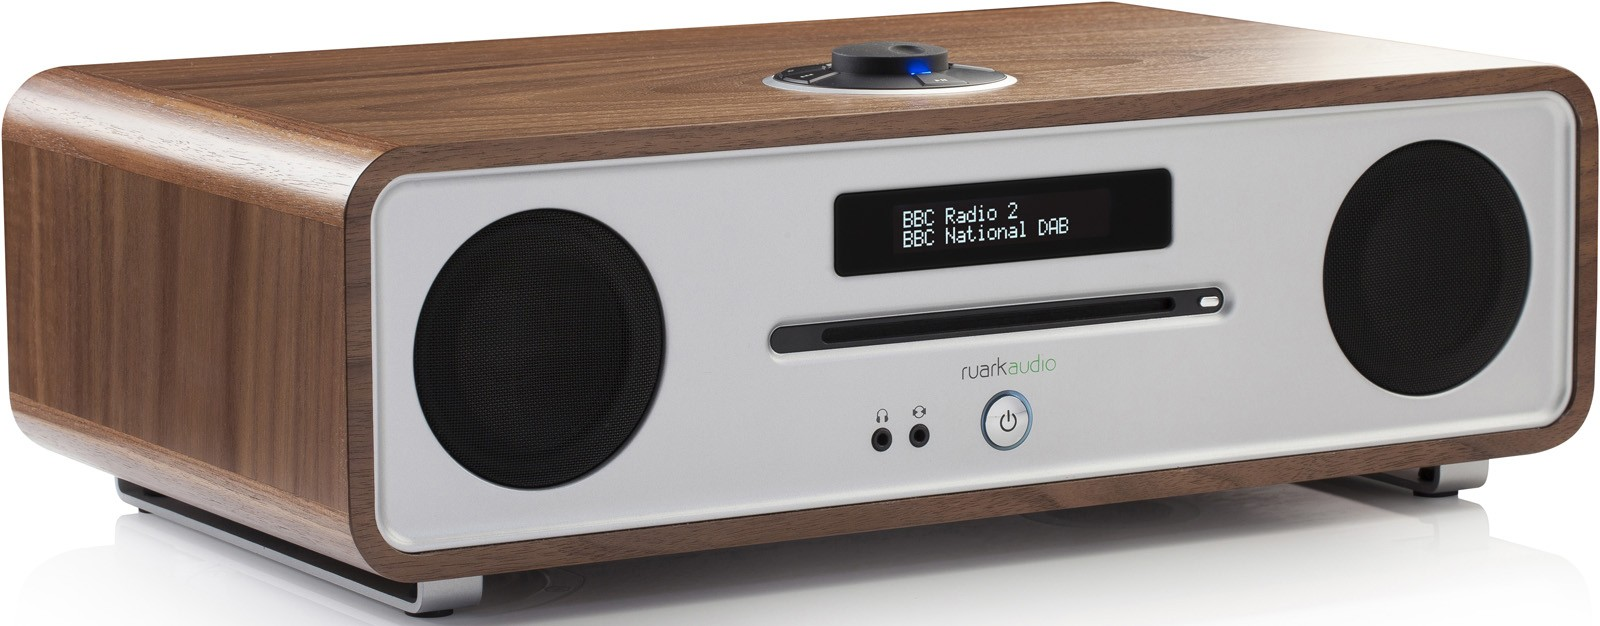 ruark audio r4 mk3 all in one music system at audio affair. Black Bedroom Furniture Sets. Home Design Ideas